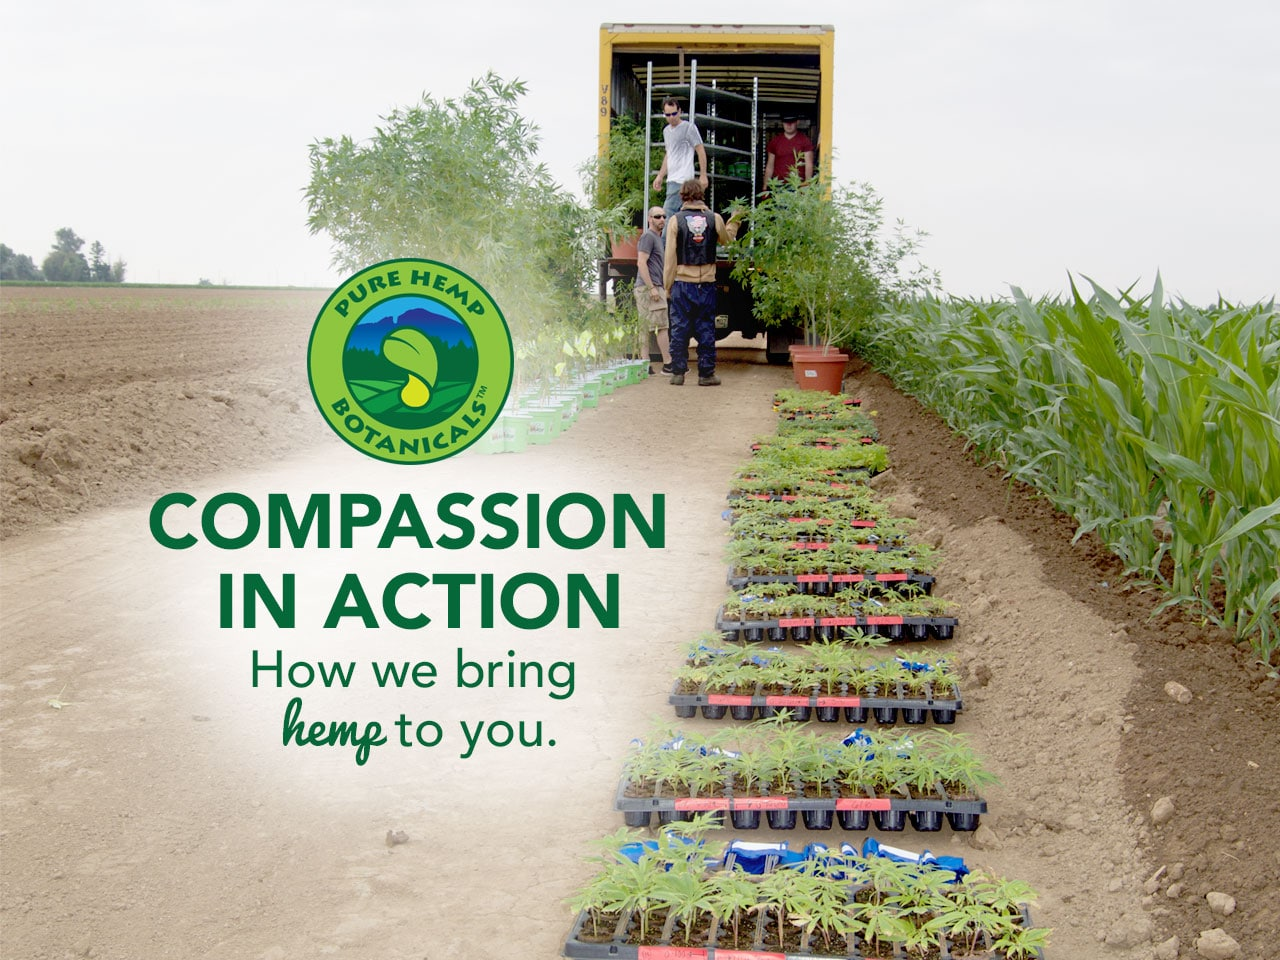 Compassion in Action: How We Bring Hemp to You